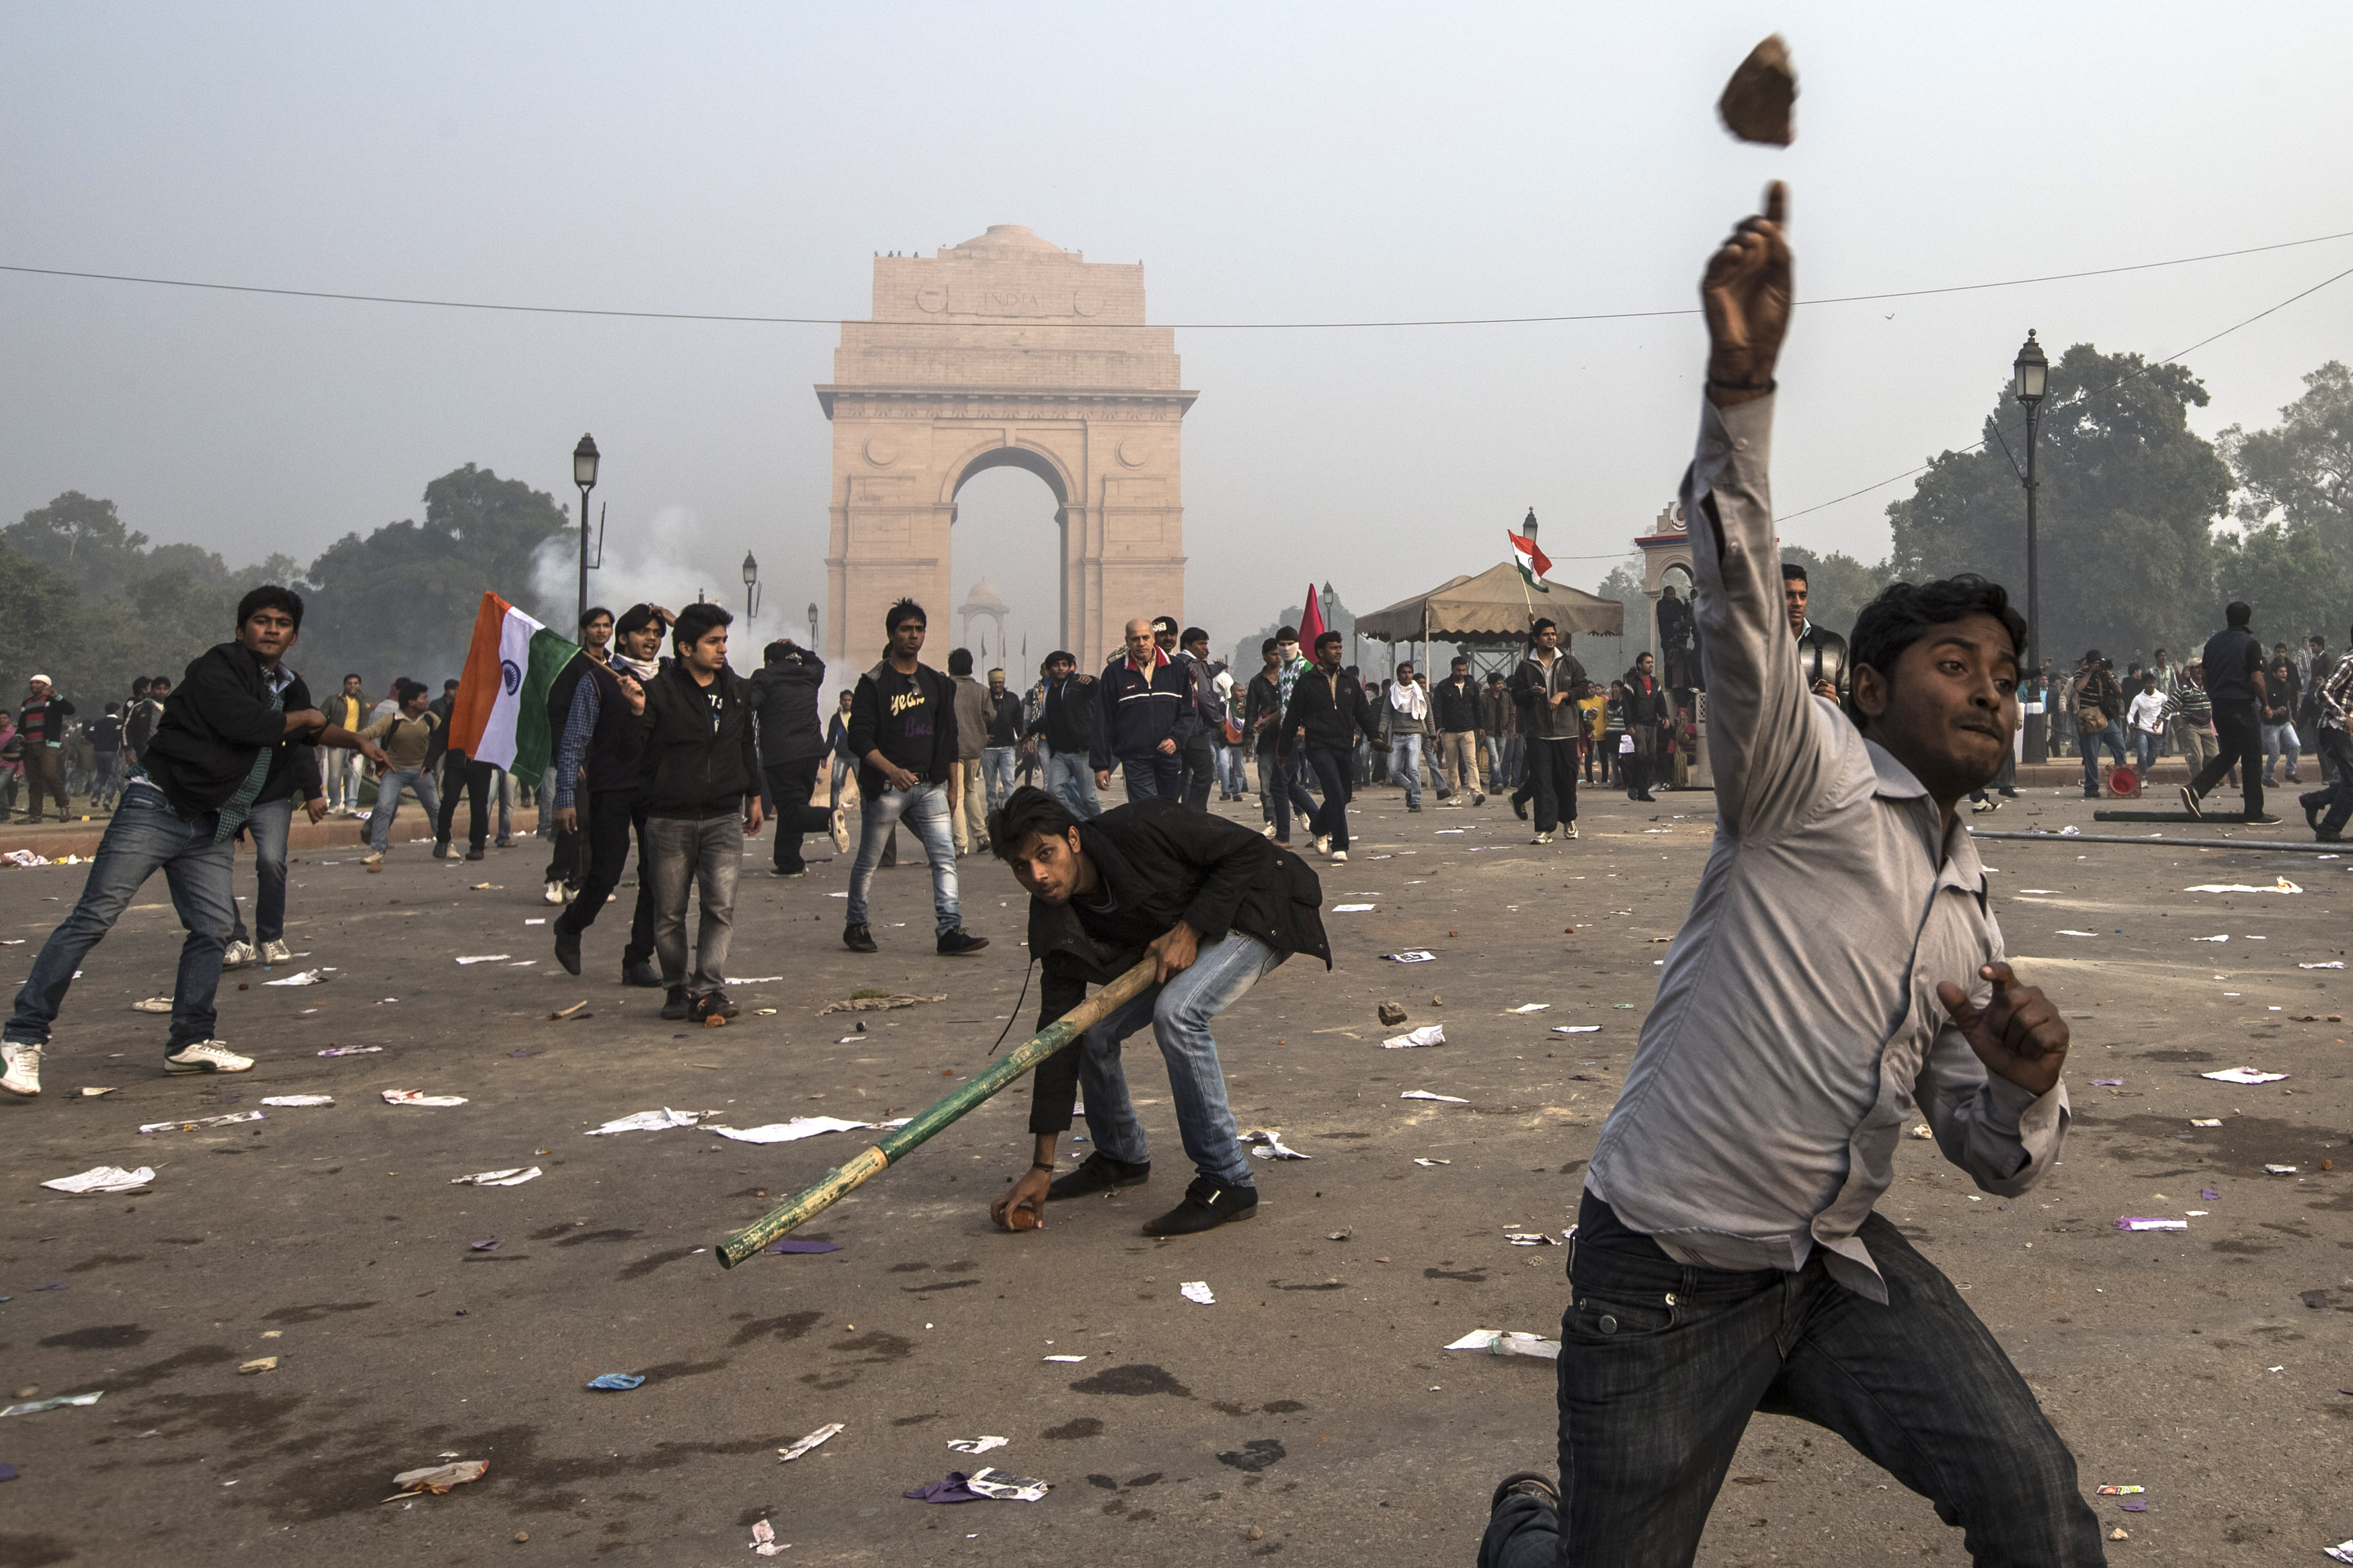 Protestors throw projectiles at Delhi police officers during a protest against the Indian governments reaction to recent rape incidents in India, in front of India Gate on December 23, 2012 in New Delhi, India. (Getty Images)